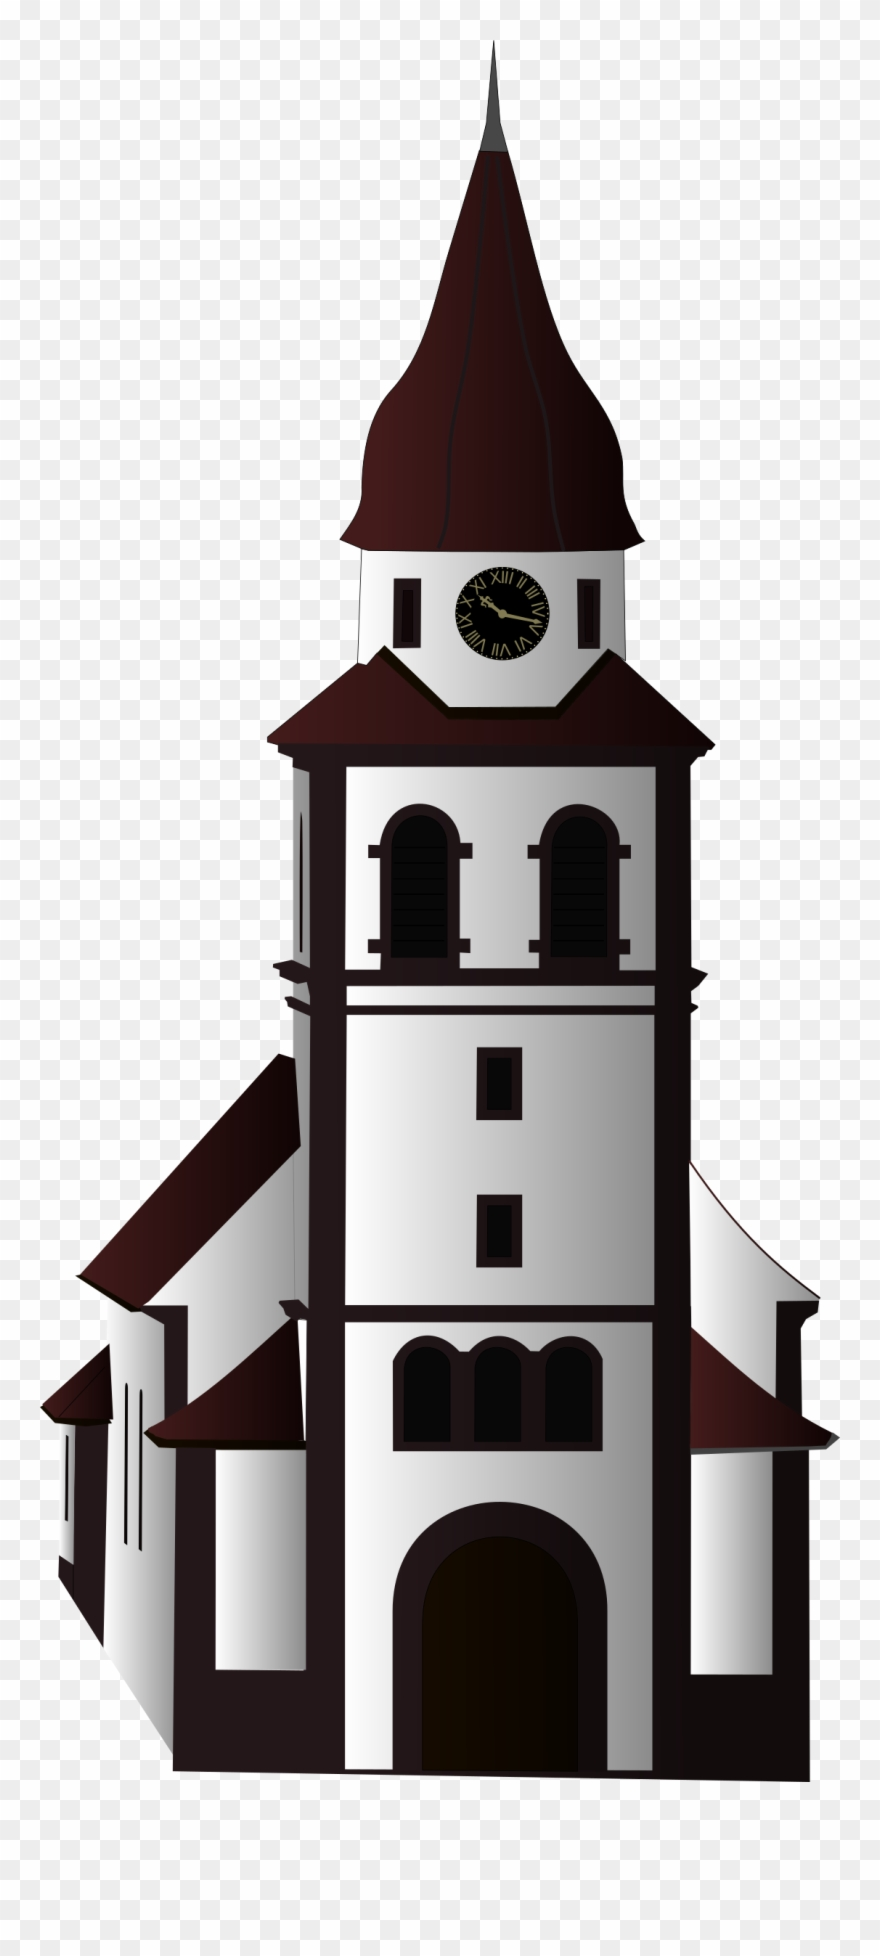 medium resolution of clock clipart church thank you for church musician card png download